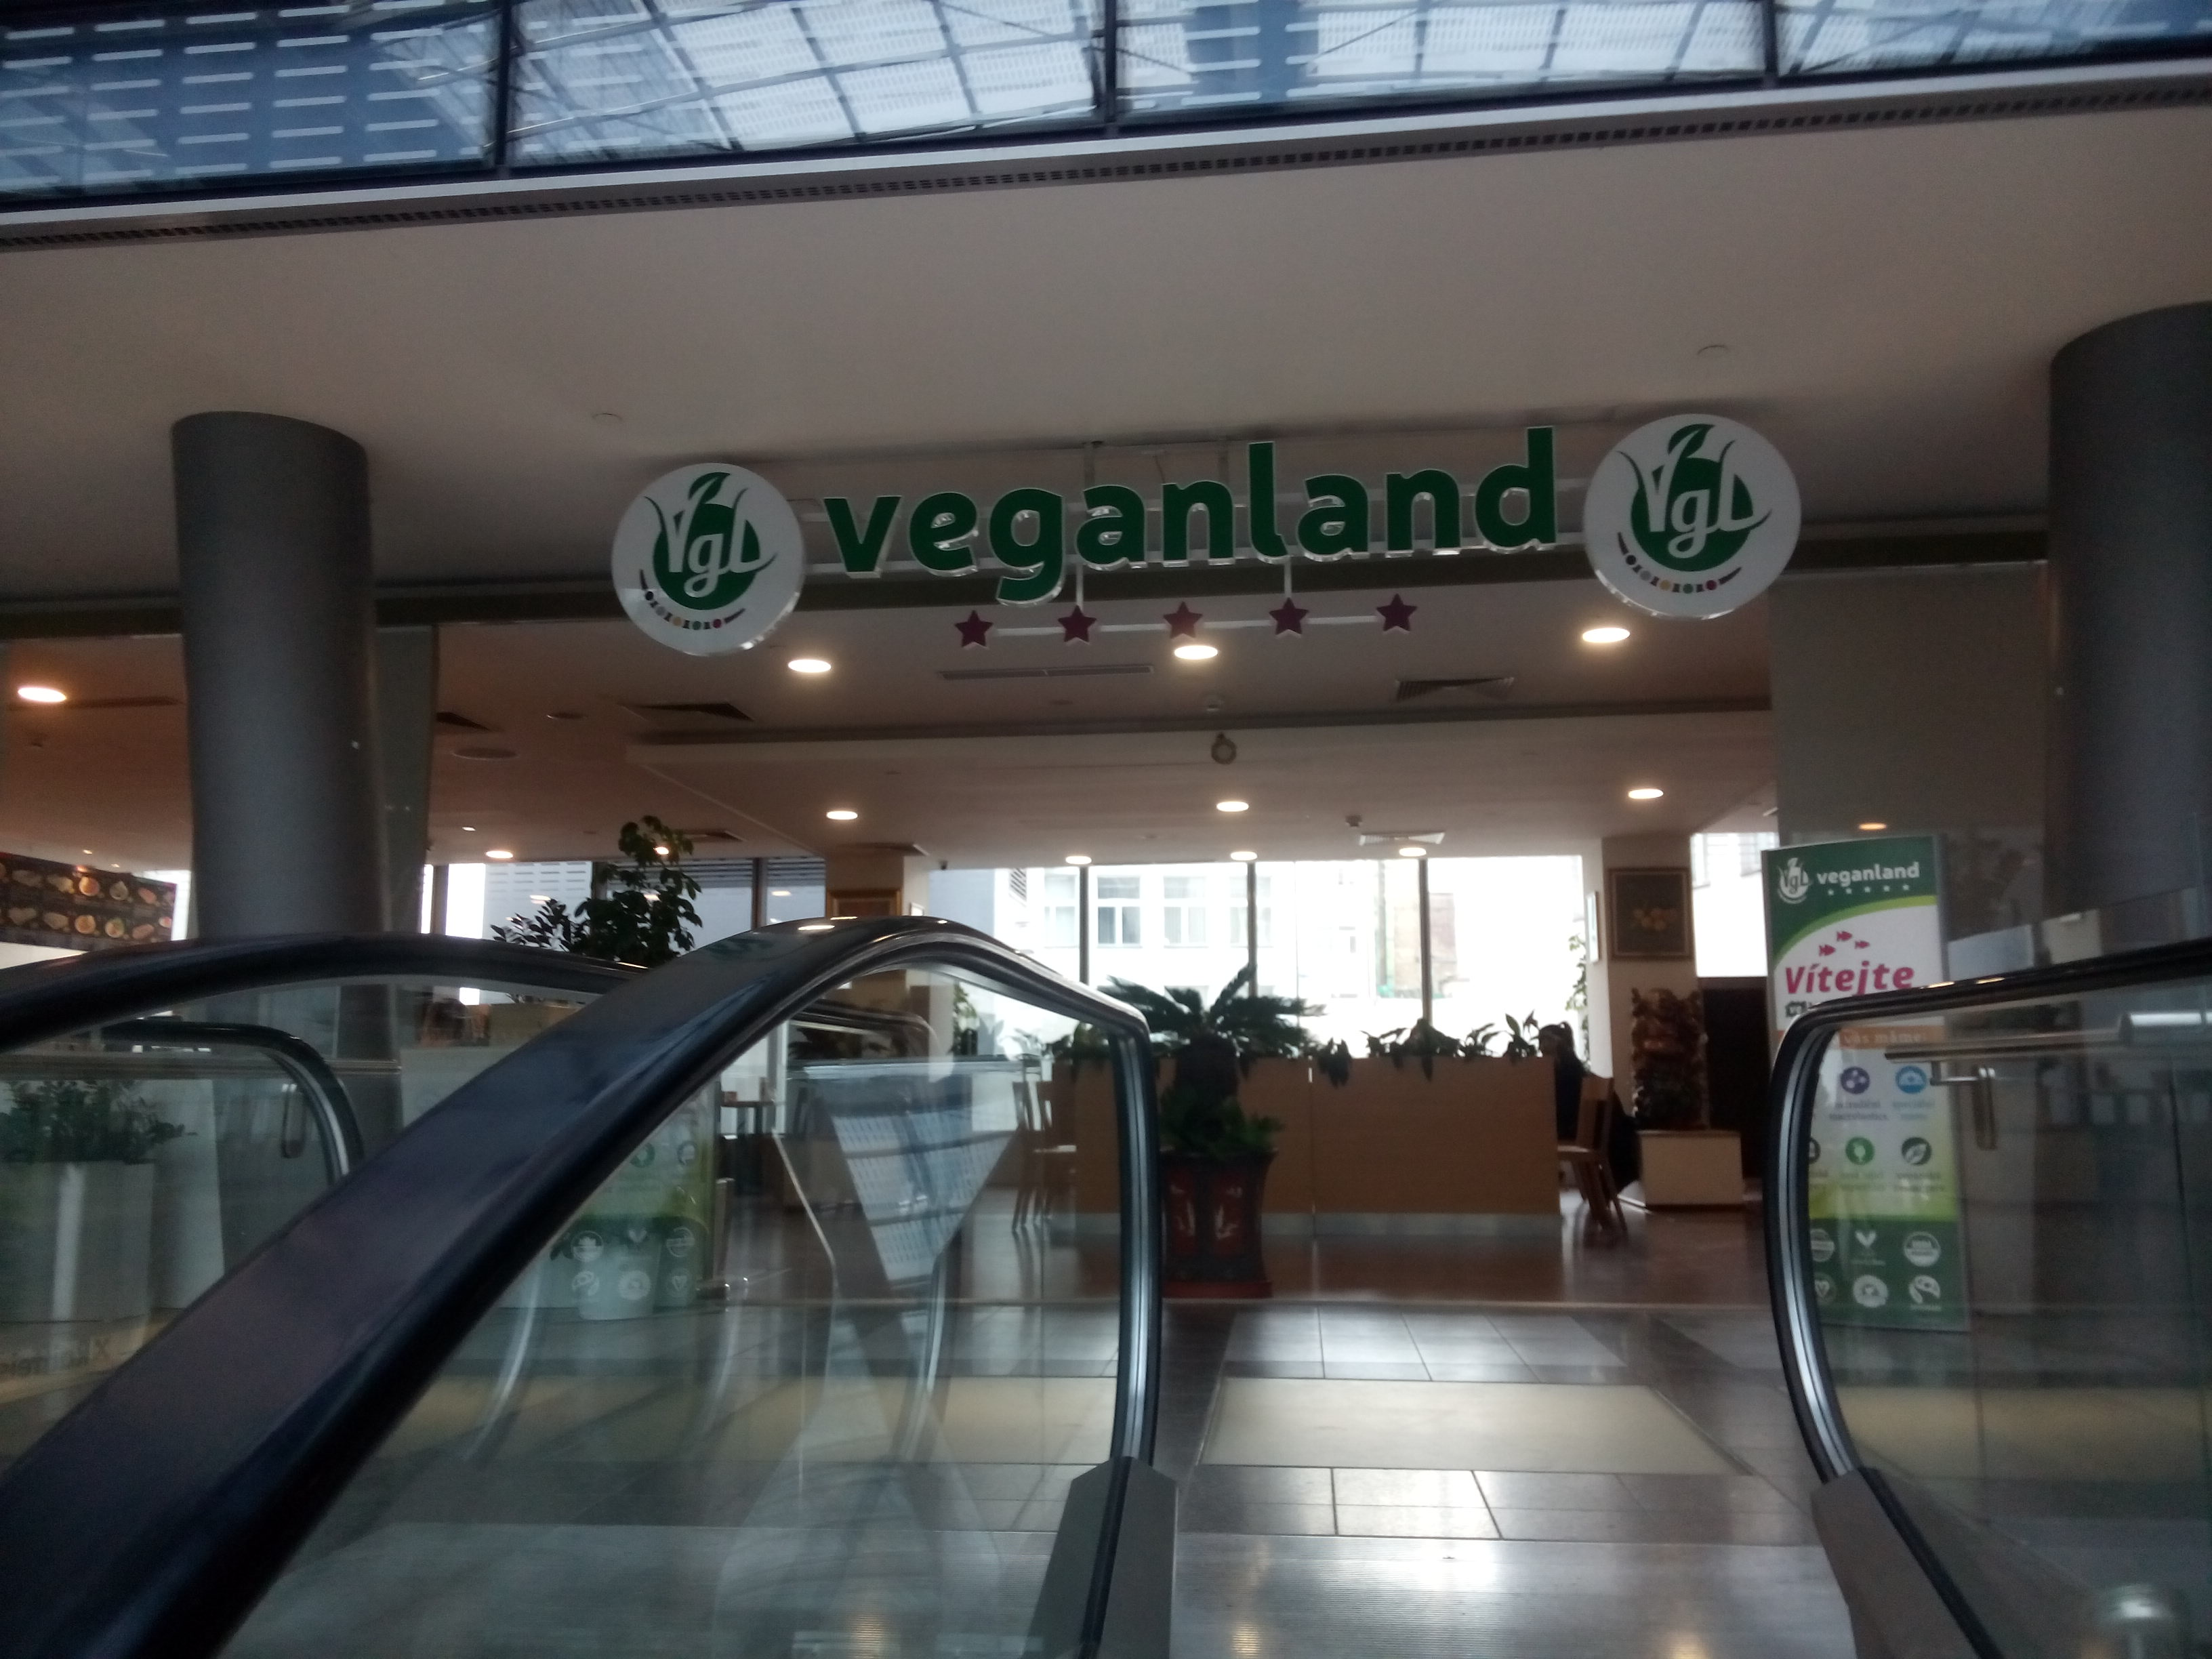 Green-lettered 'Veganland' sign at the top of a mall escalator